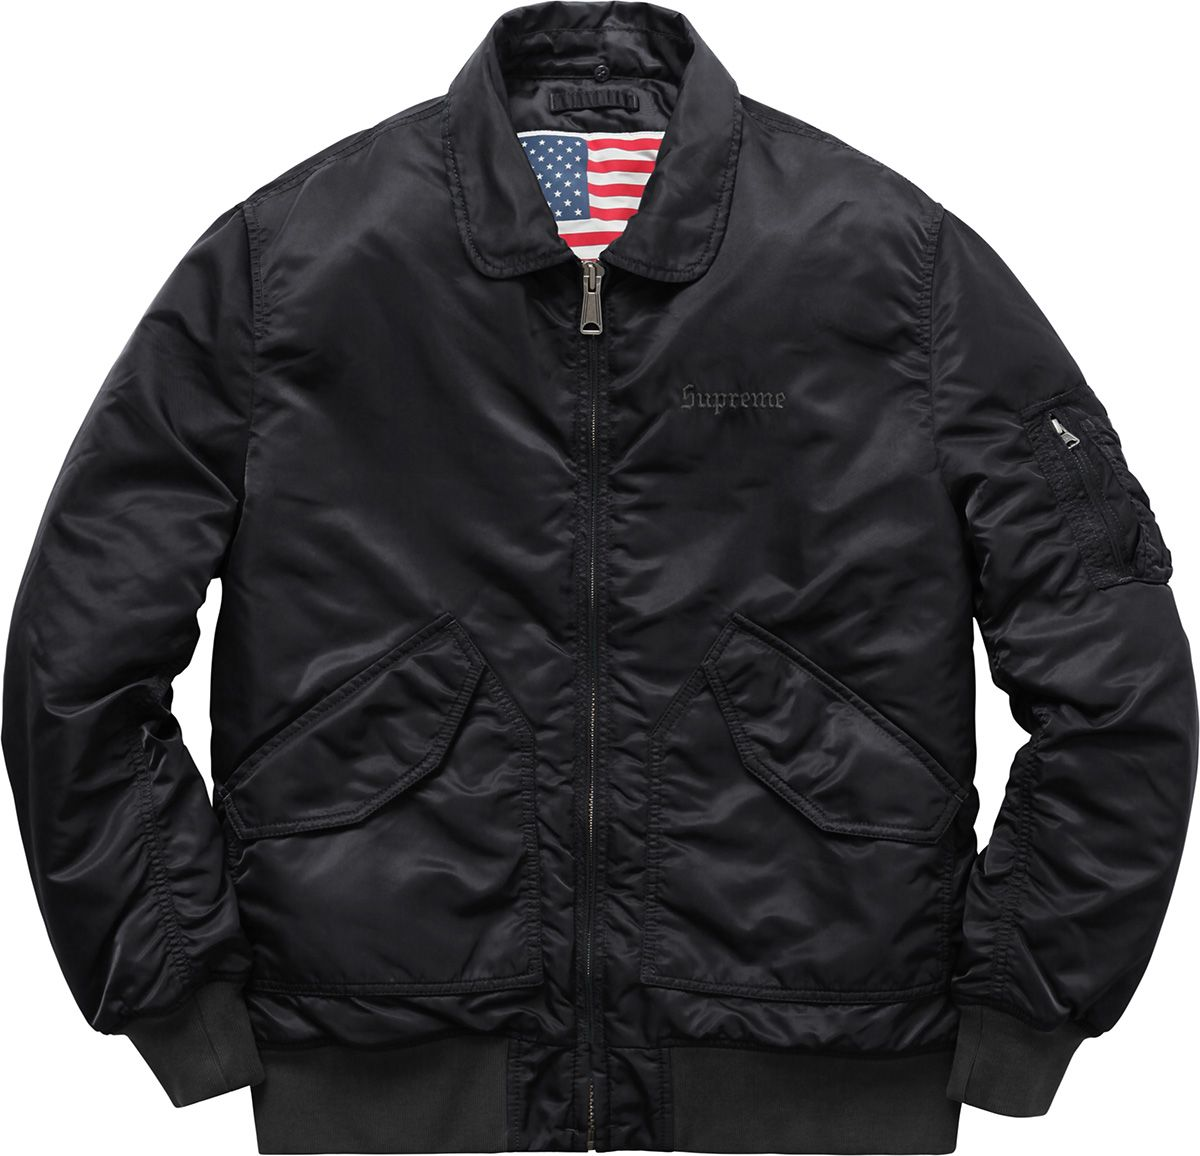 Icgxhy3f5do Jackets, Winter outerwear, Clothes design